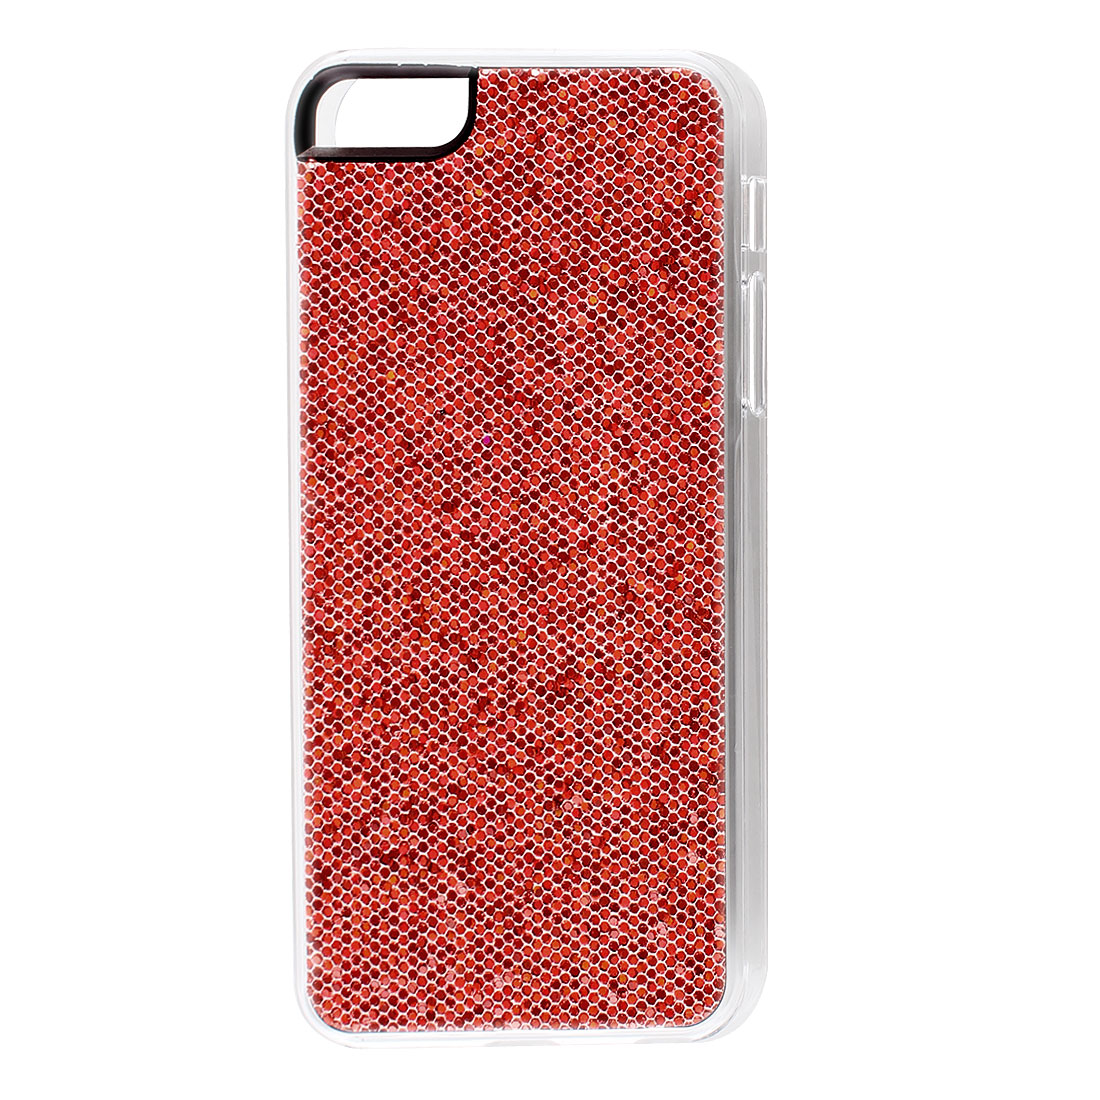 Red Sparkle Glitter Hexagons Hard Back Case Cover for iPhone 5 5G